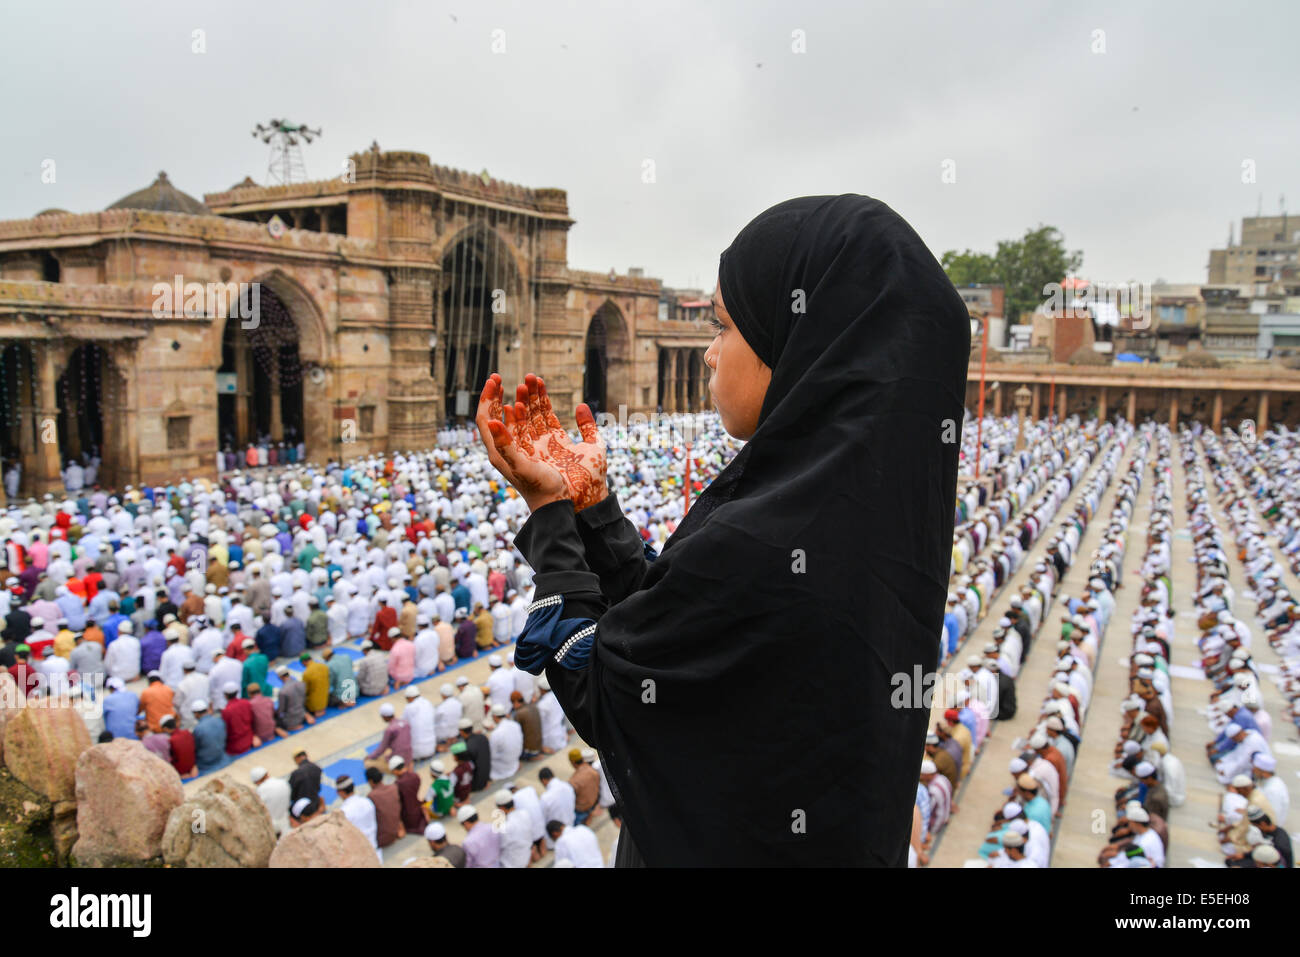 Ahmedabad, India. 29th July, 2014.  Muslims celebrating Eid al-Fitr which marks the end of the month of Ramadan, Stock Foto